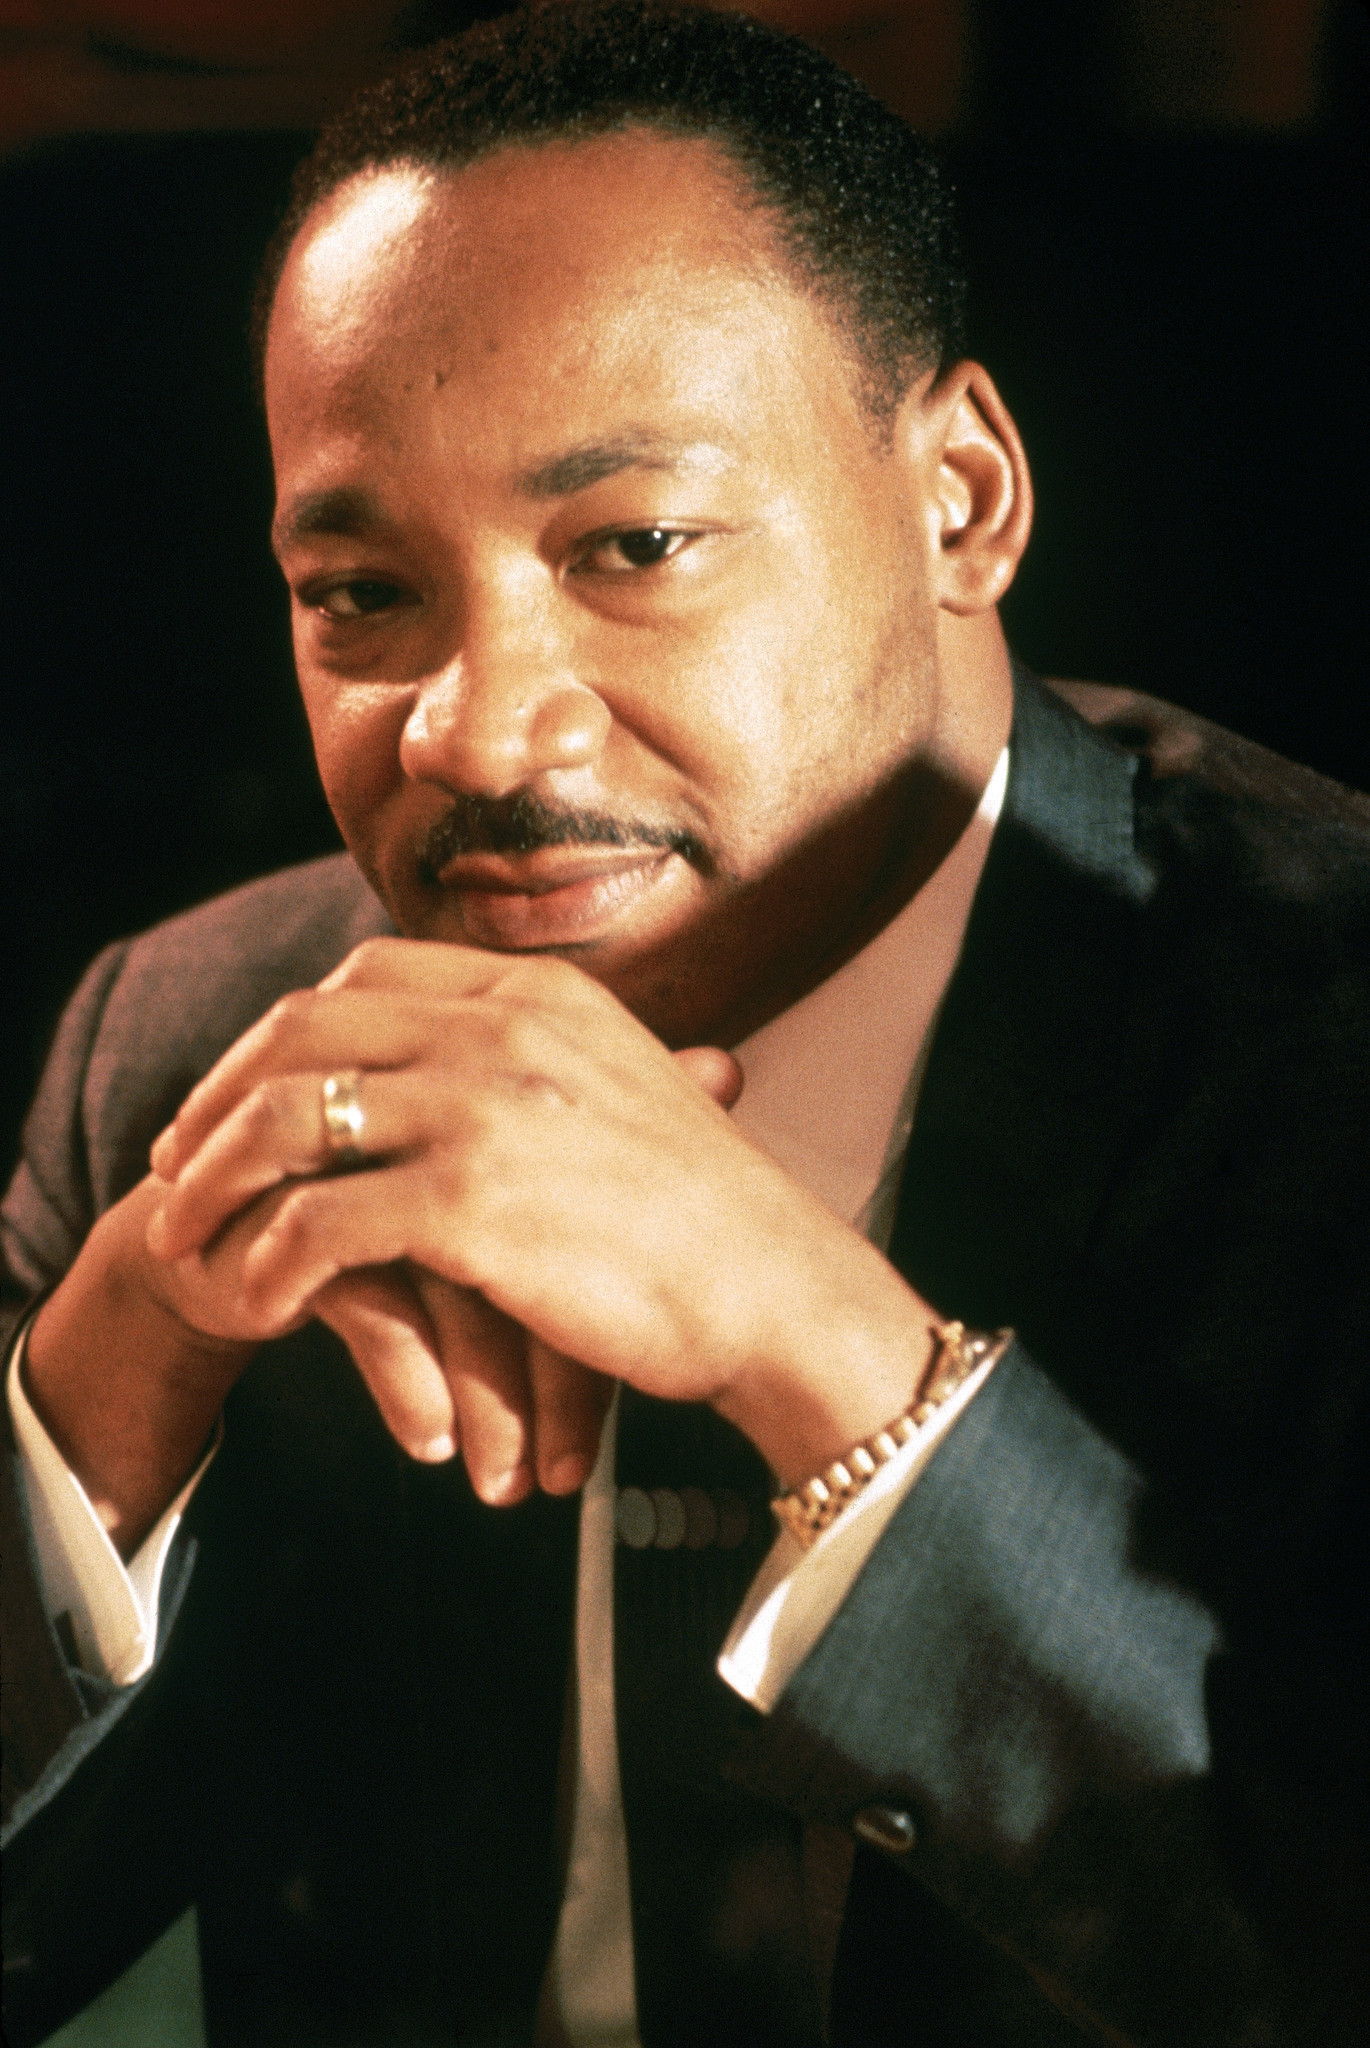 Marking Martin Luther King Jr. Day with local celebrations - Chicago Tribune